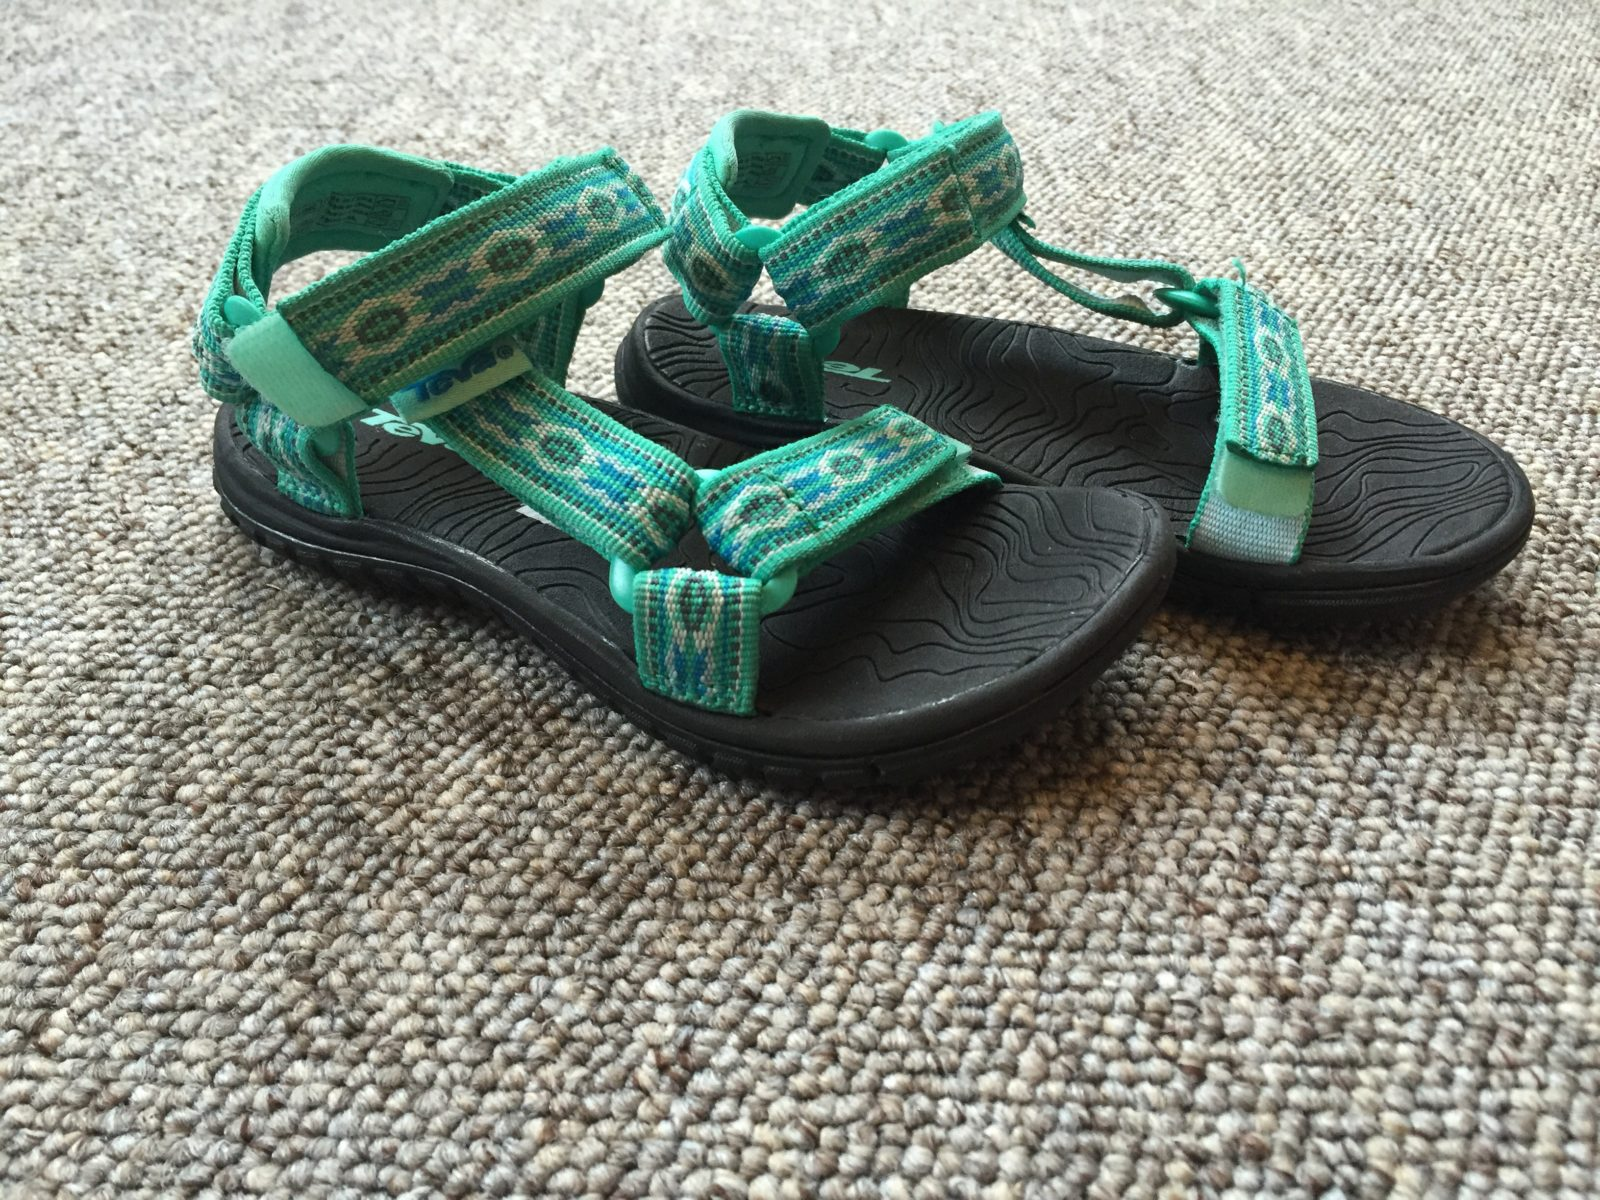 8eabe09fe ... Teva Hurricane Hiking Sandals to the test  however